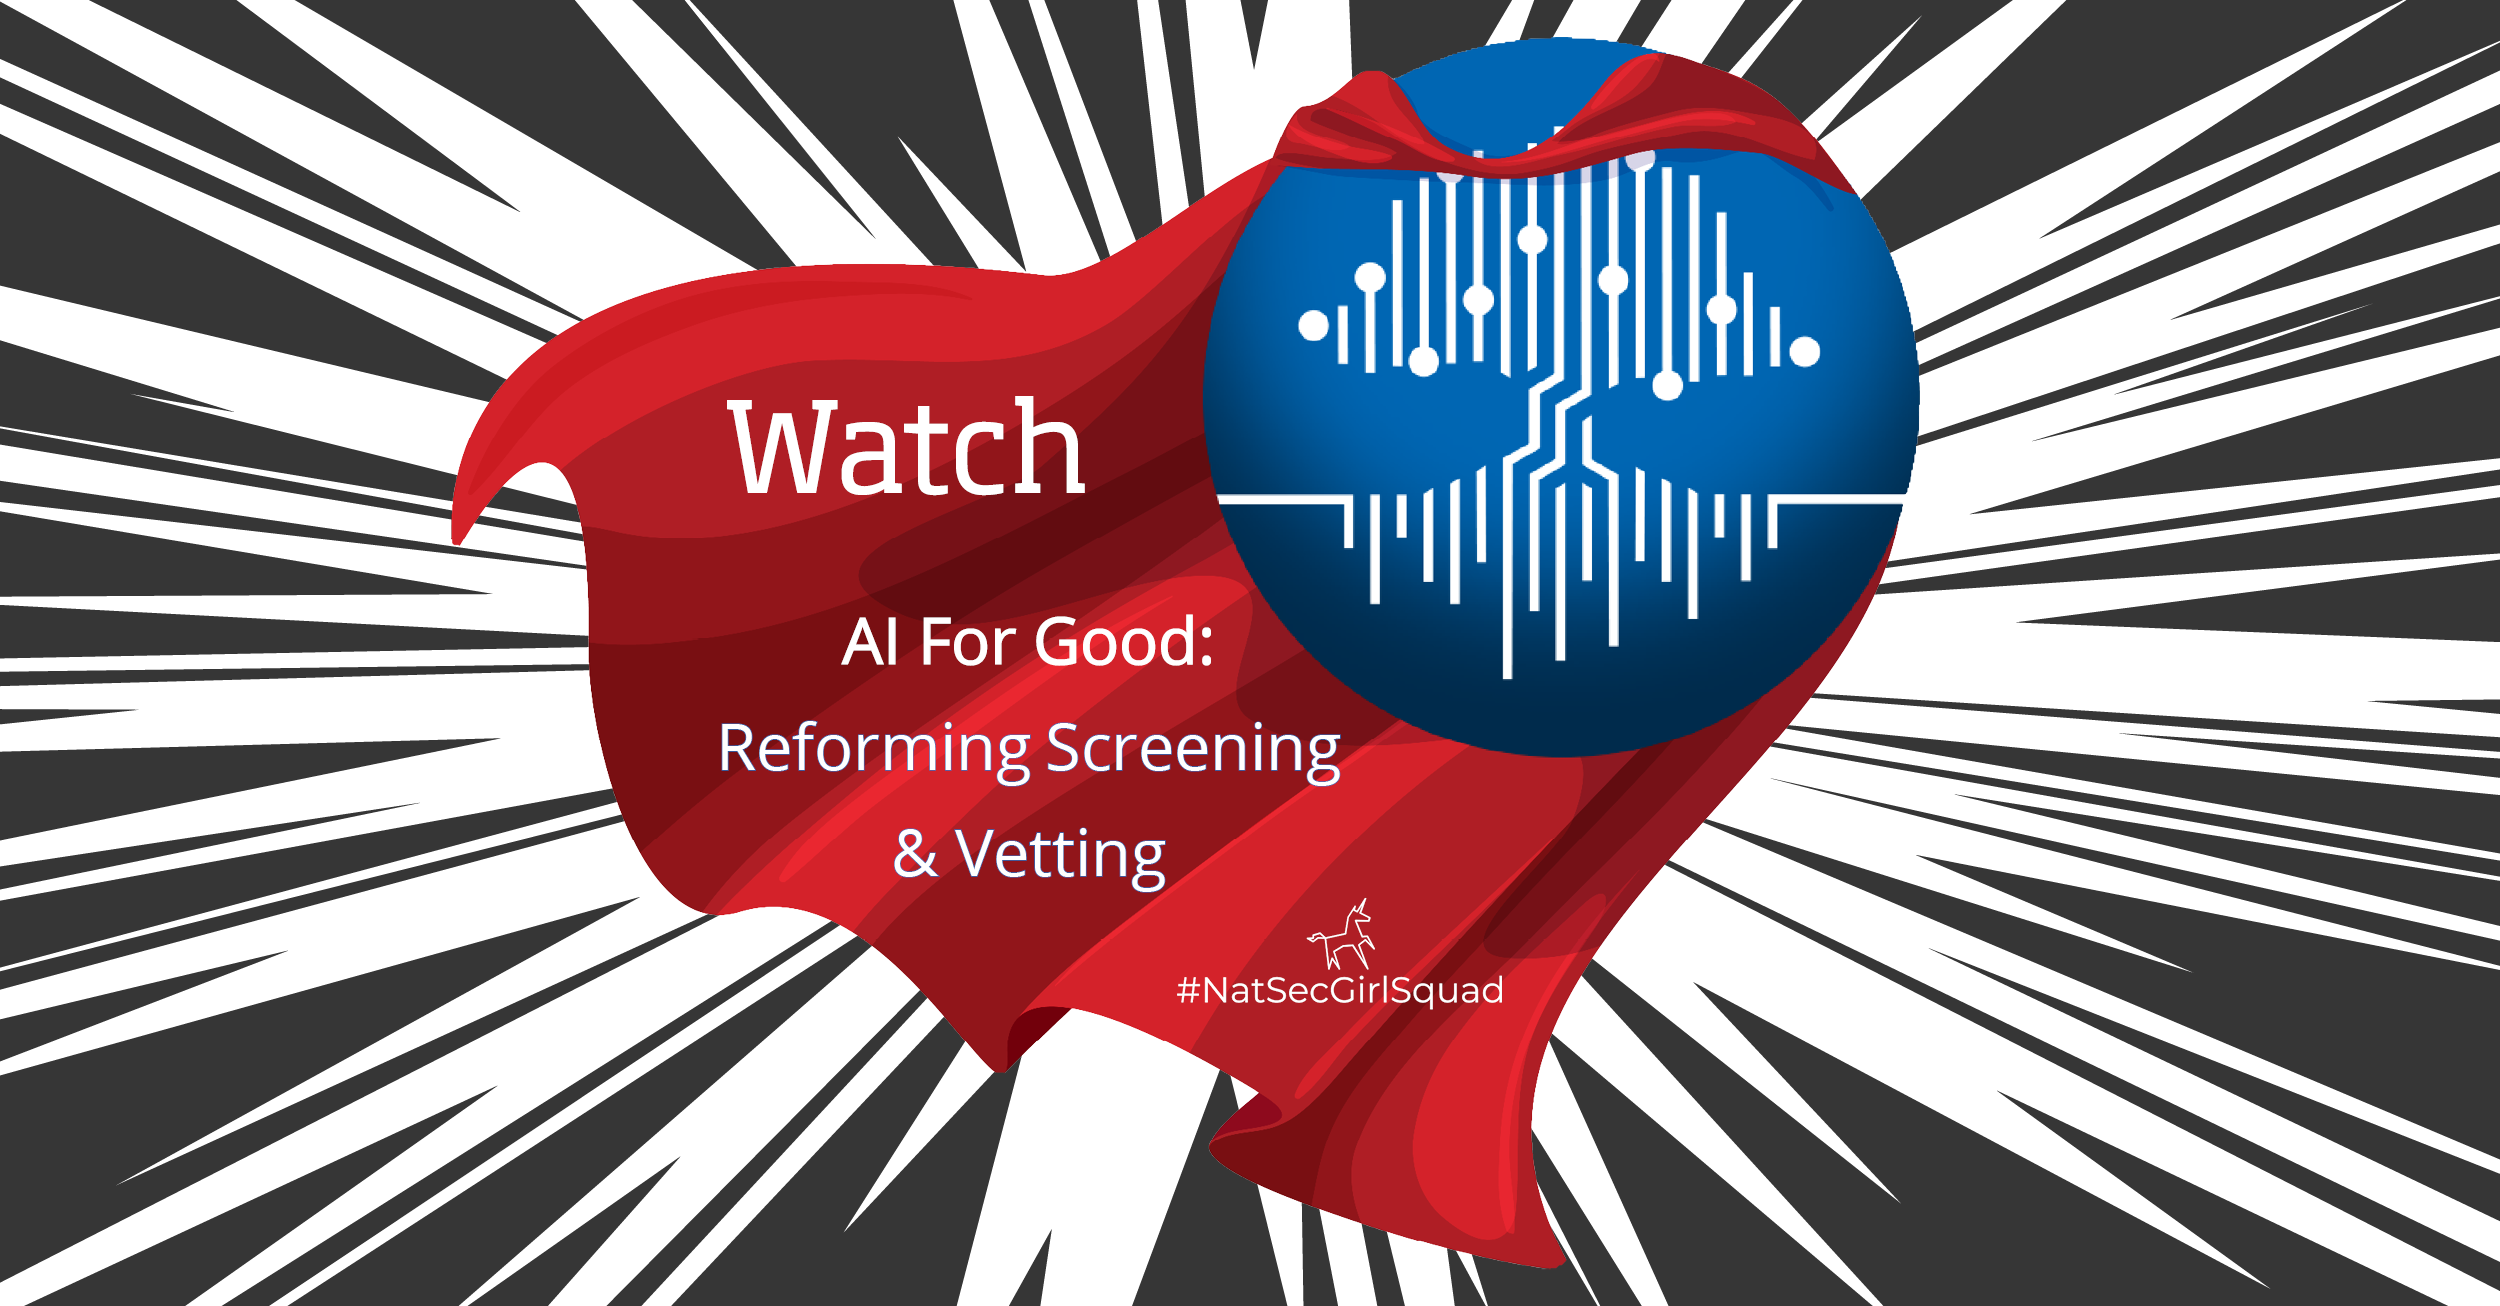 AI for Good Reforming Screening & Vetting-20200625 1931-1